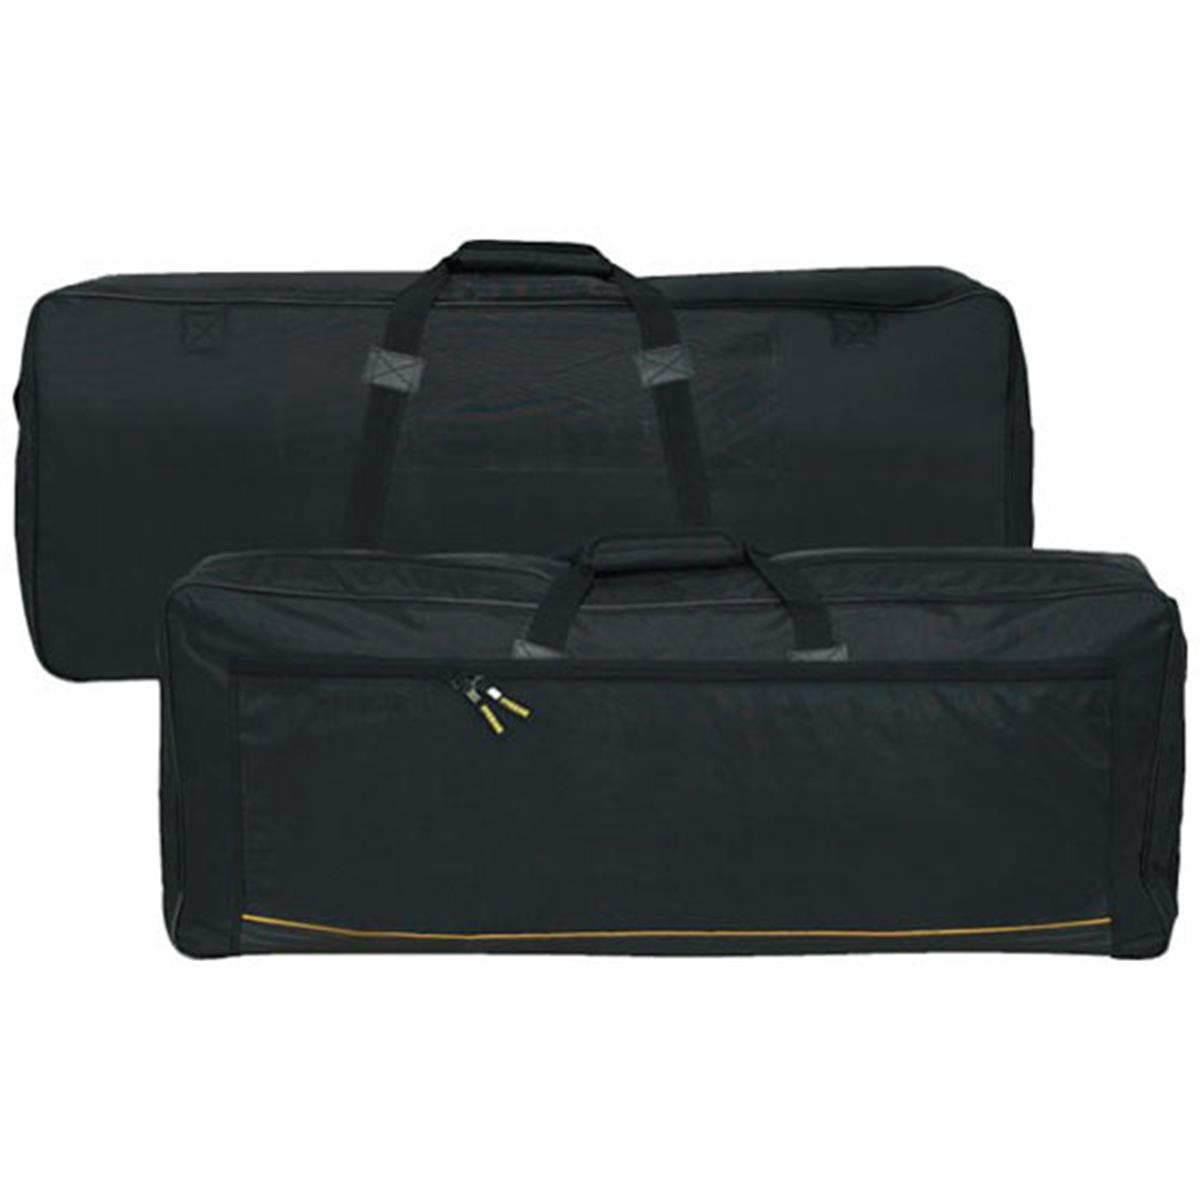 ROCKBAG-RB21539-BORSA-TASTIERA-STAGE-PIANO-sku-13723